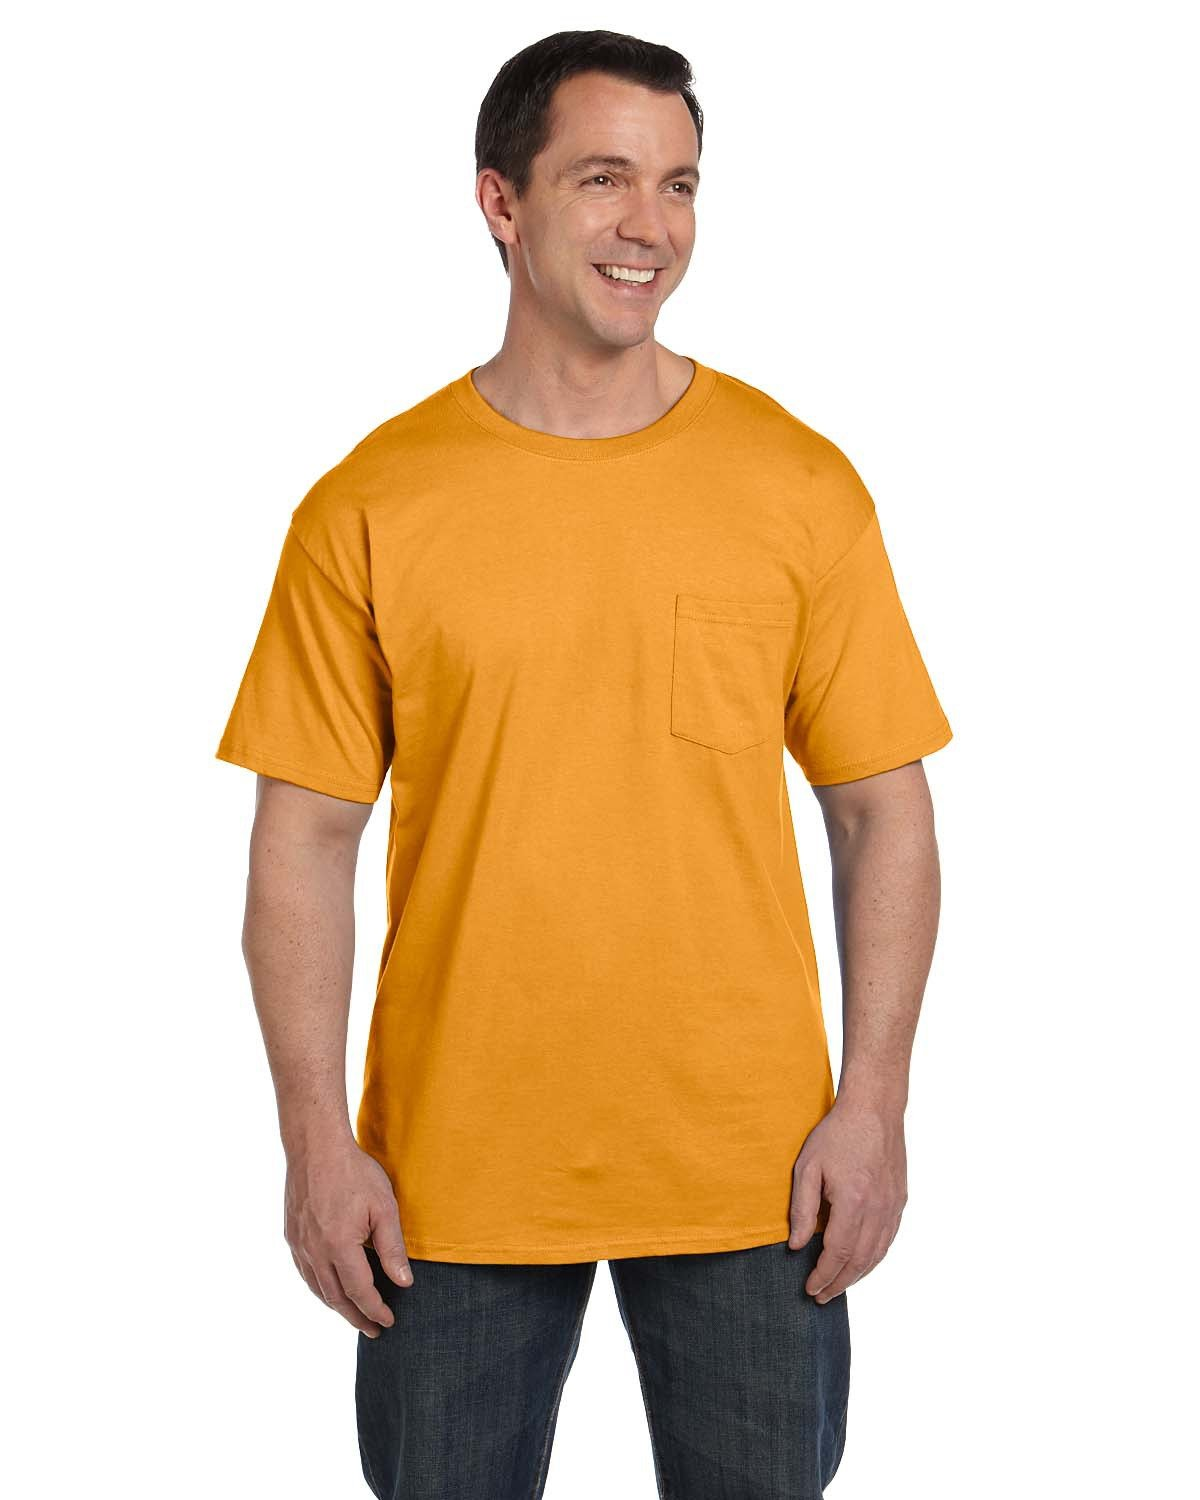 Hanes Adult Beefy-T® with Pocket GOLD